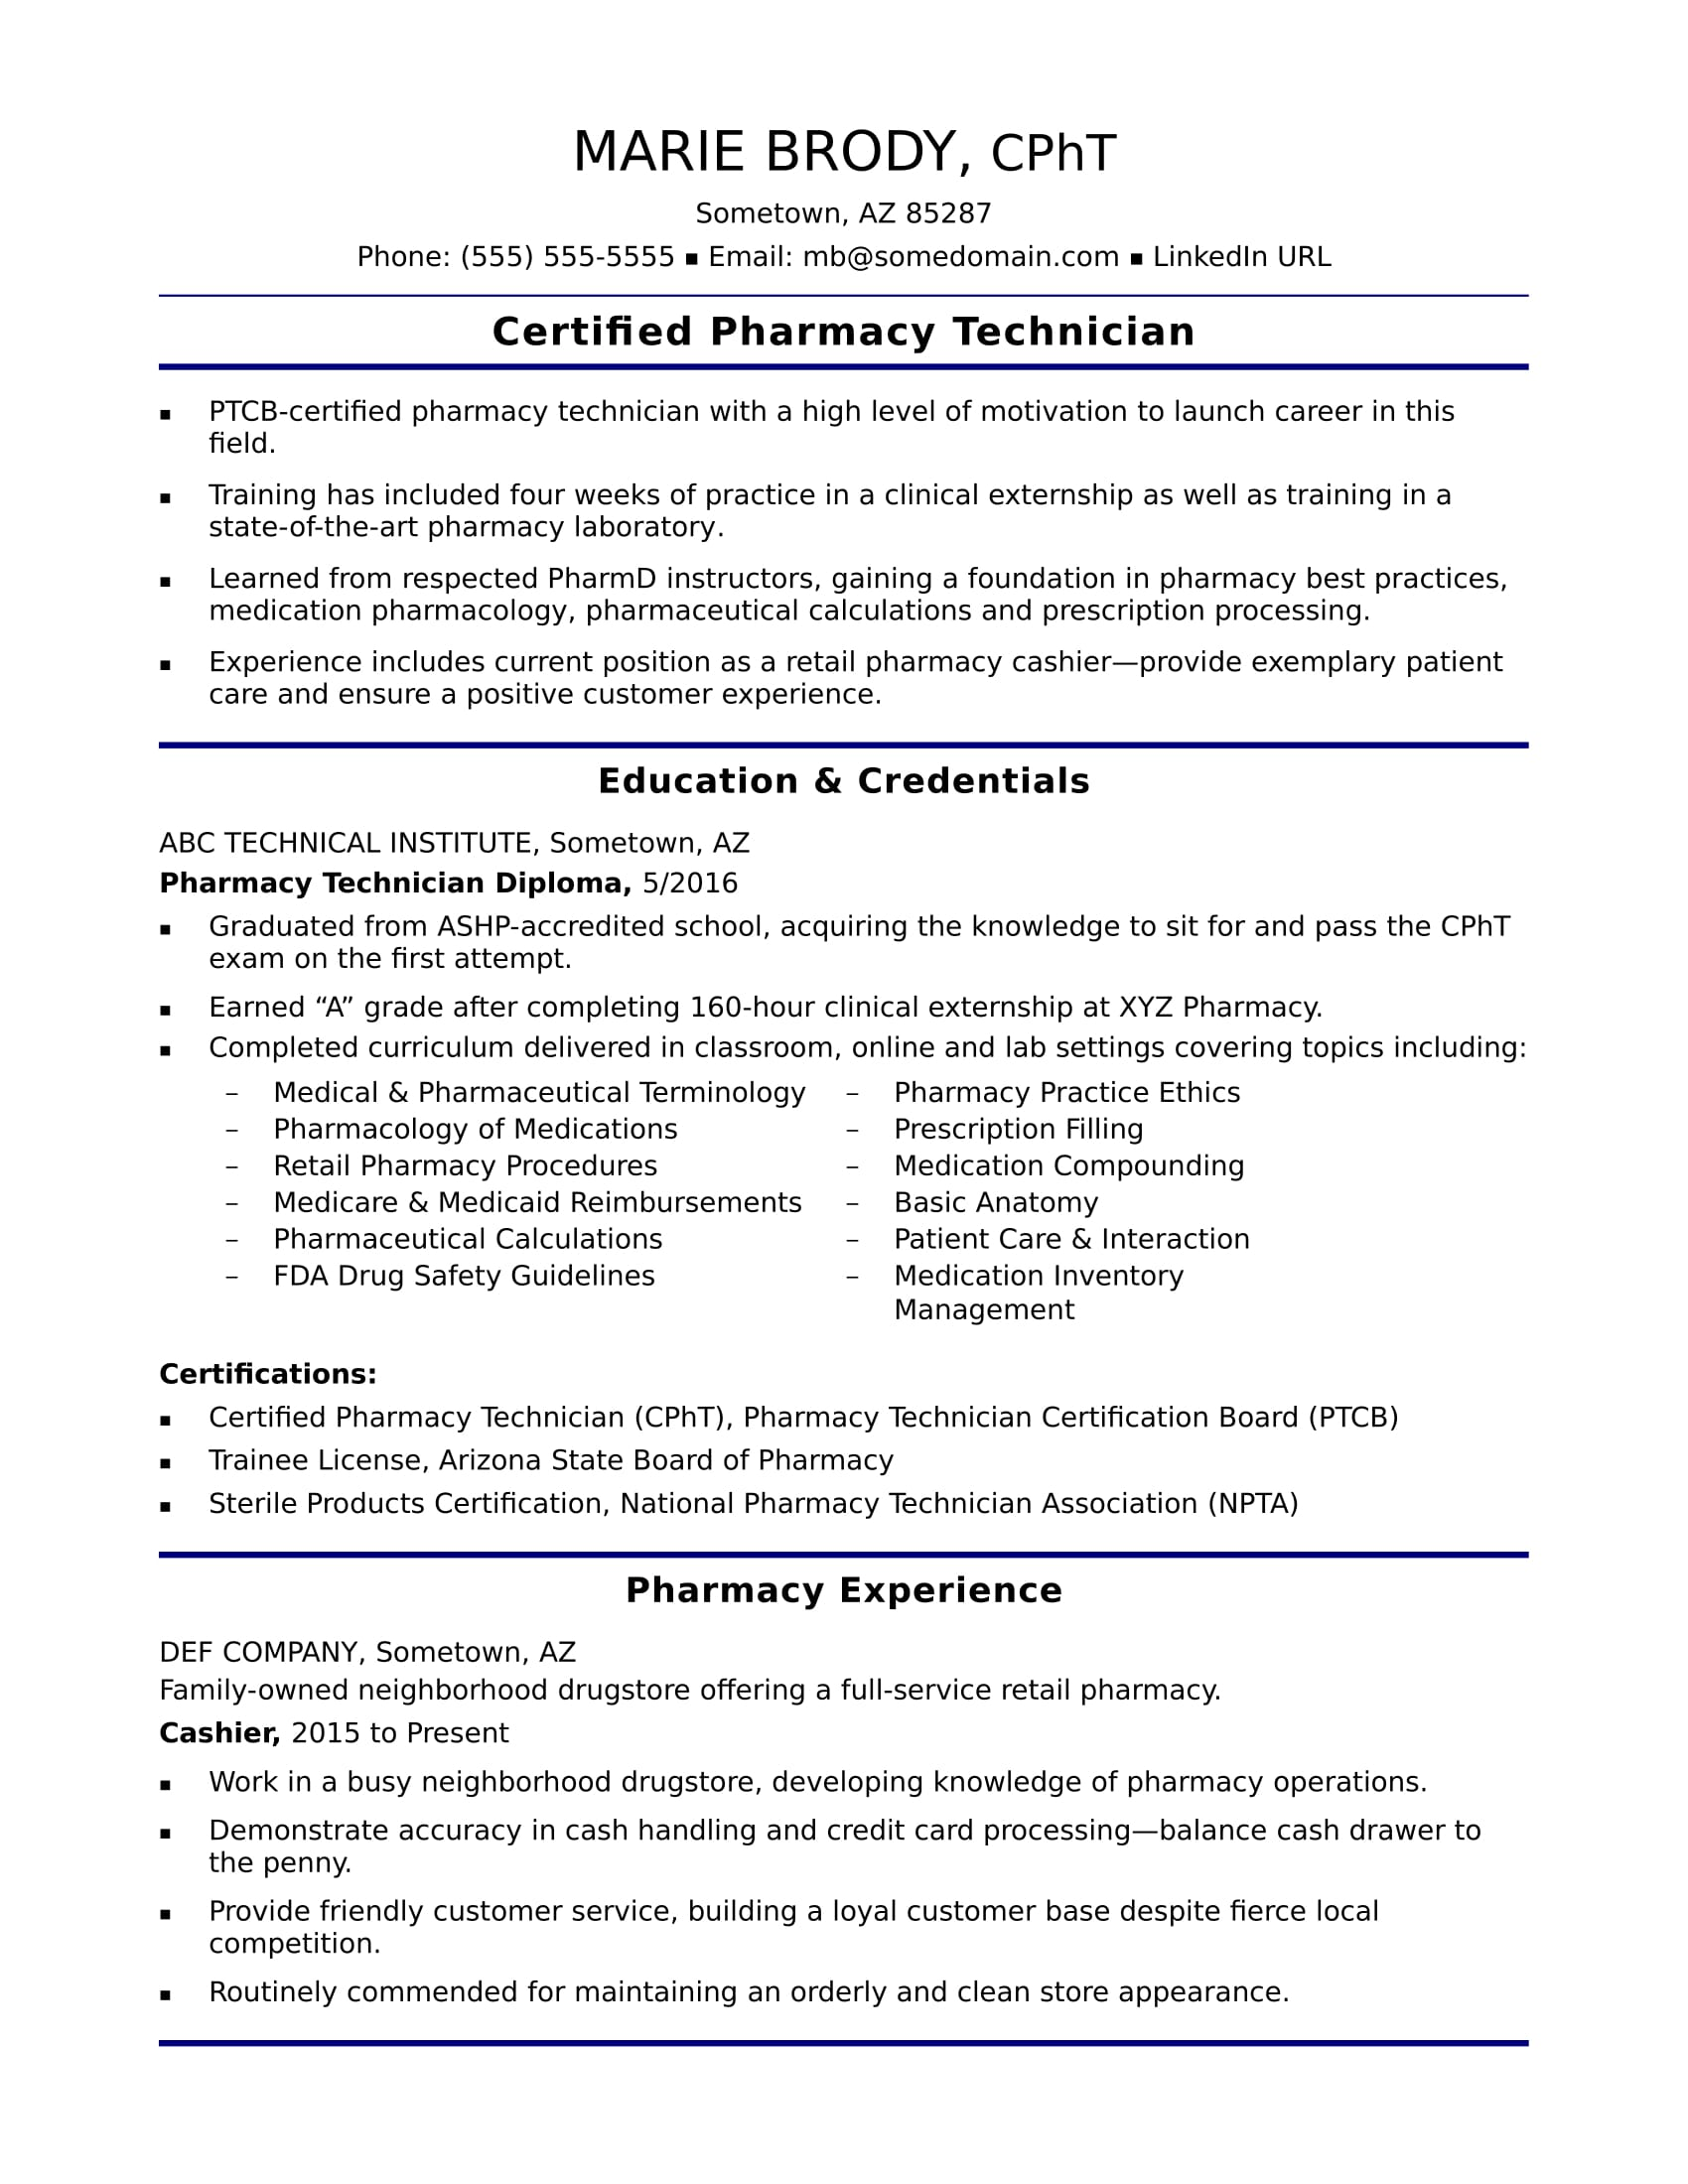 Superb Sample Resume For An Entry Level Pharmacy Technician On Pharmacy Tech Resume